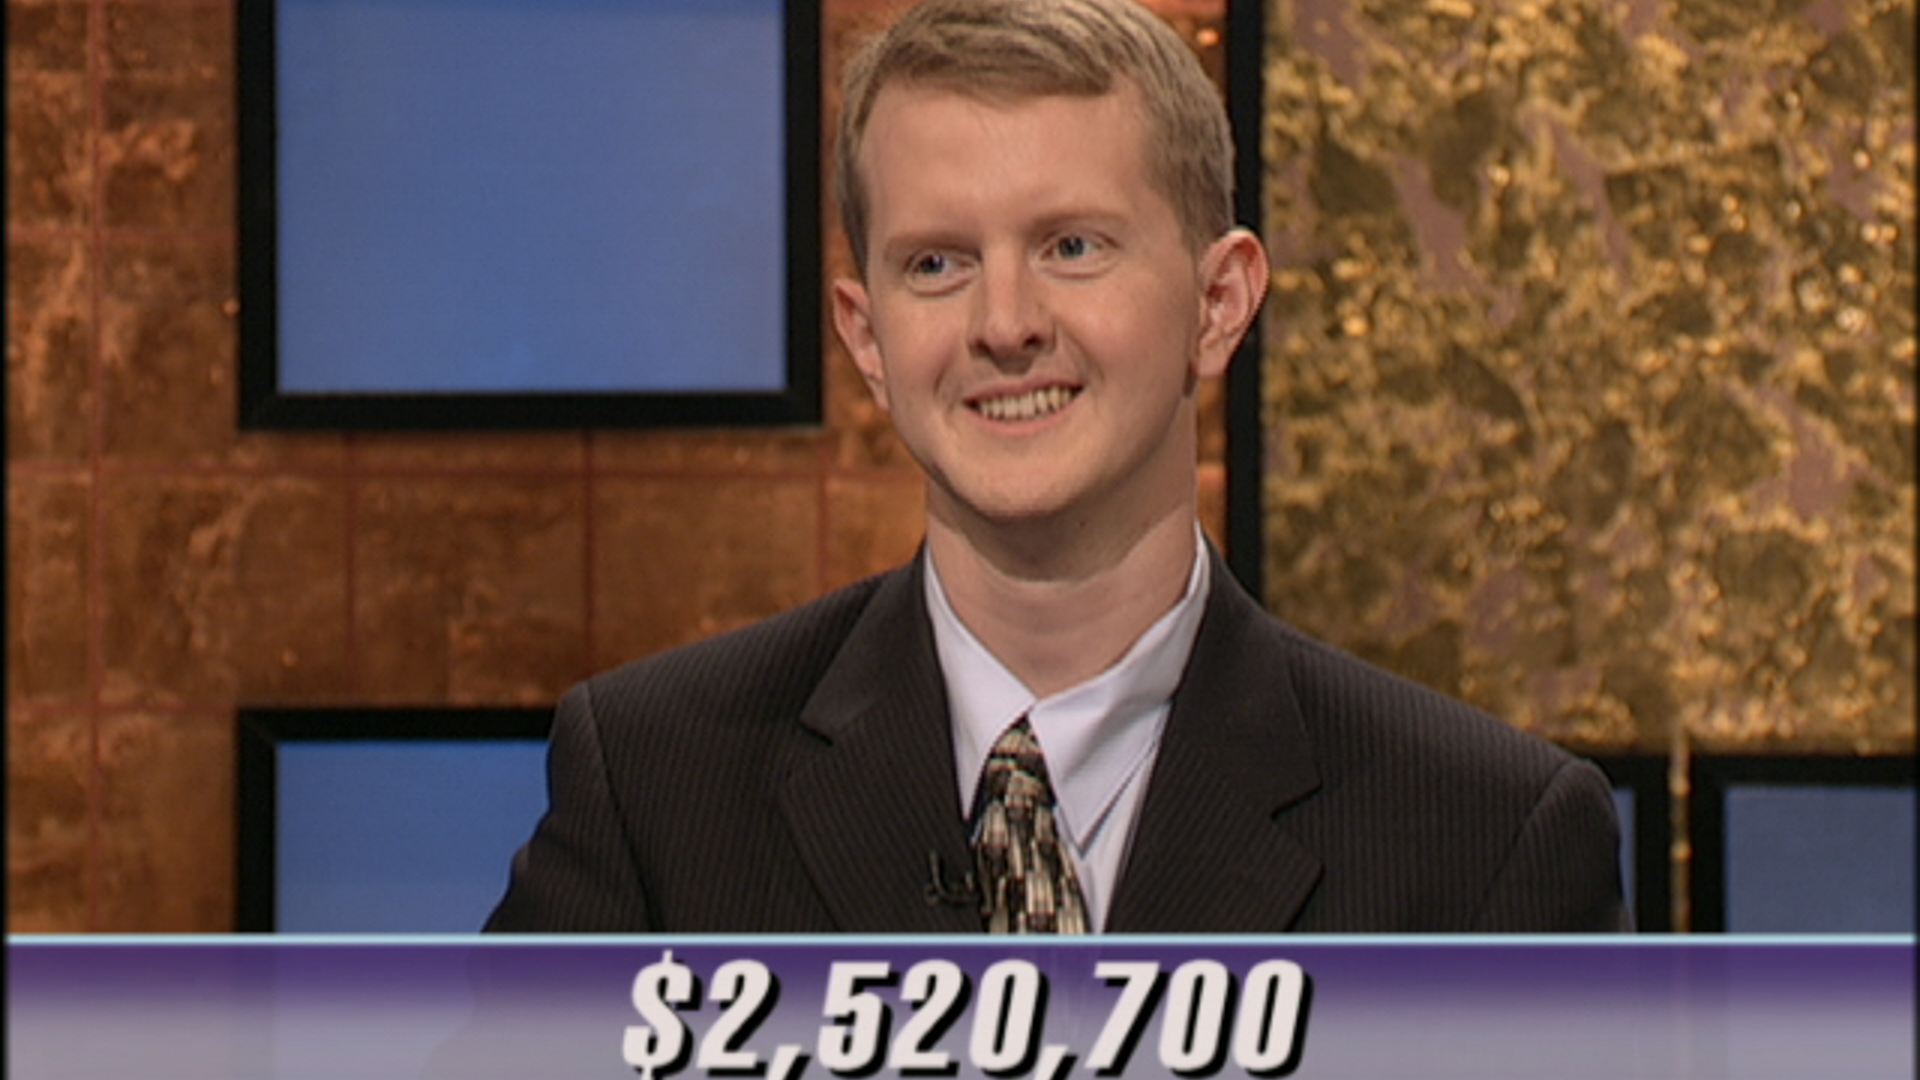 What It's Like To Win Big Money on a Game Show